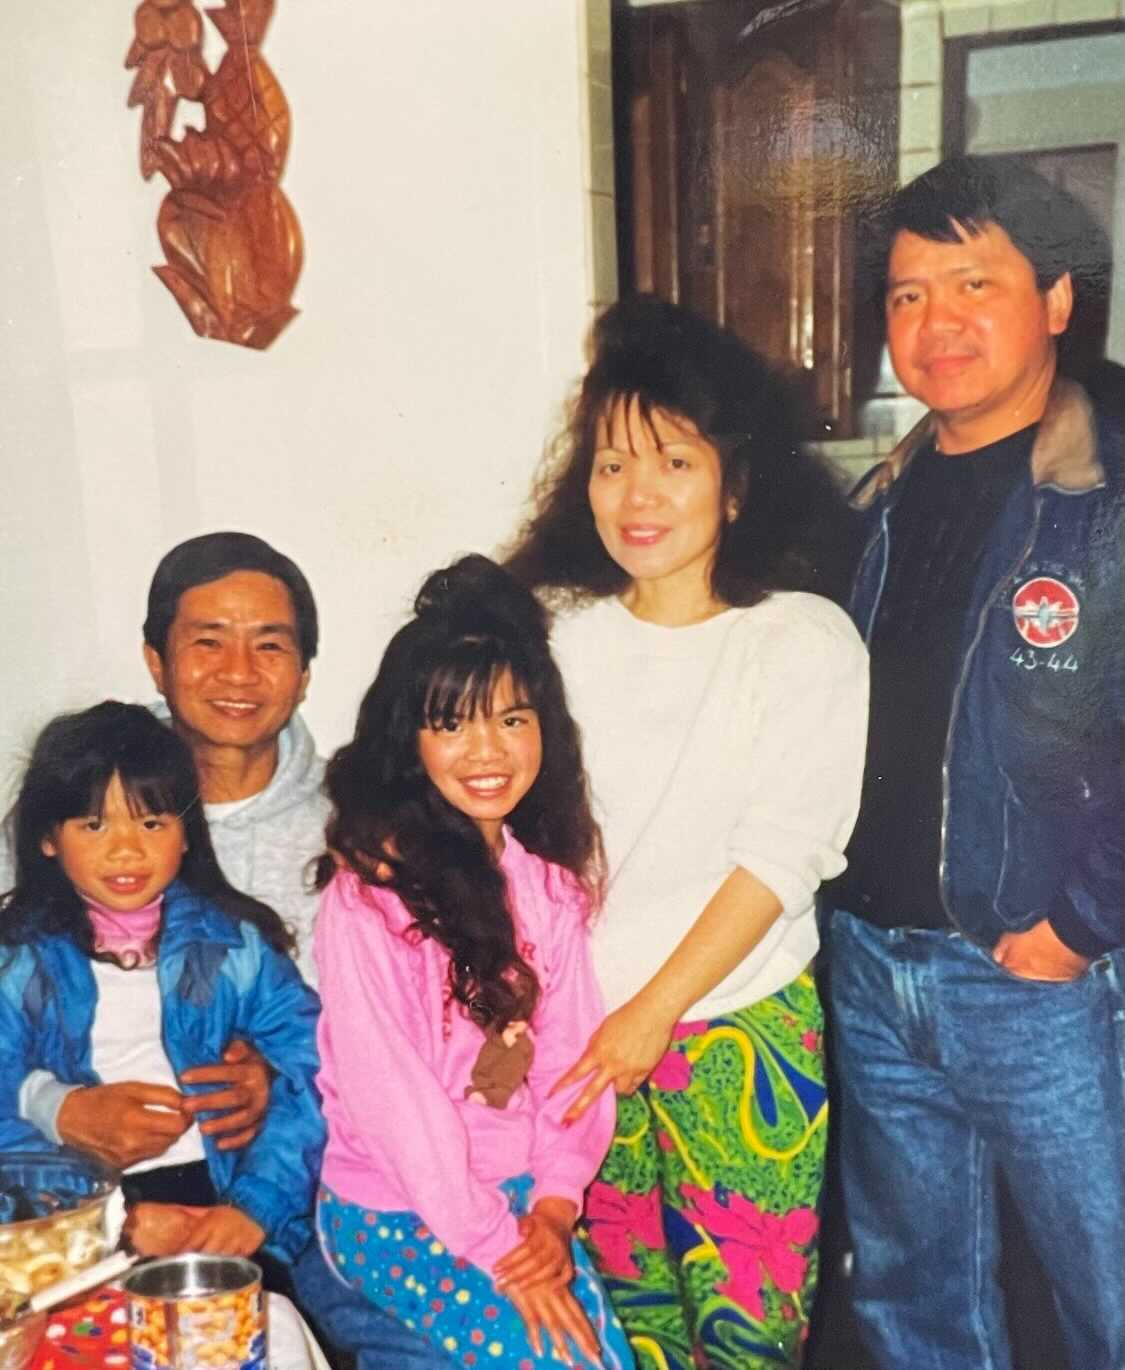 A Filipino American family poses for a photograph. They are wearing clothes and have hairstyles that were popular in the 1990s.